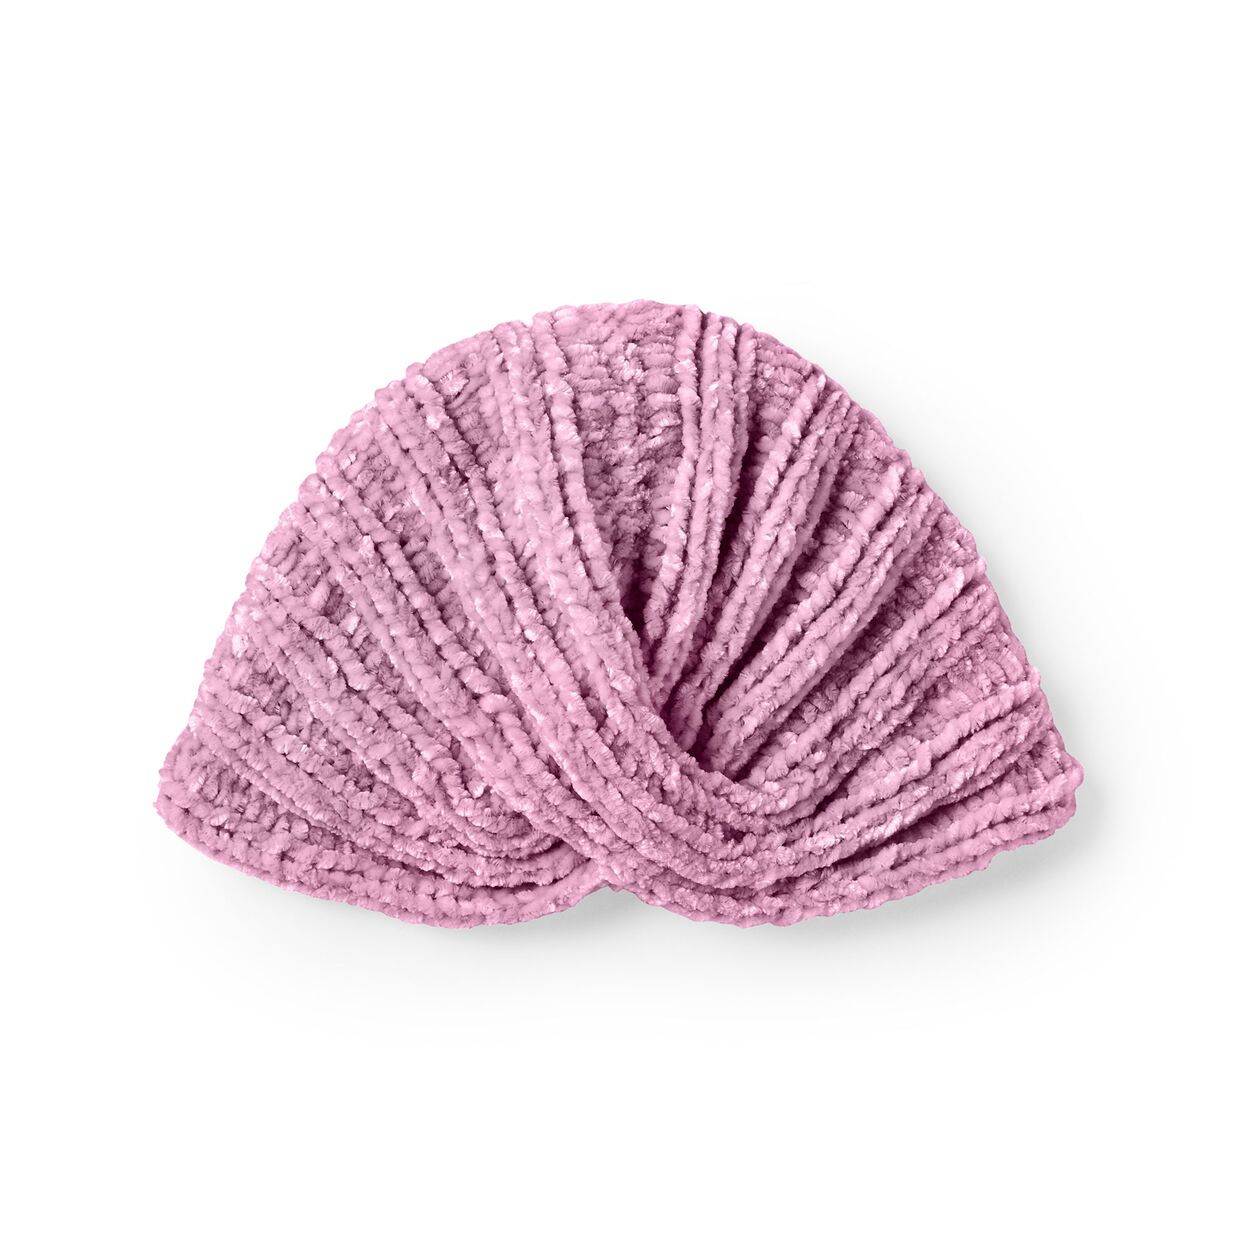 Bernat Knit Baby Turban, 6-12 mos. in color in 2020 | Baby ...